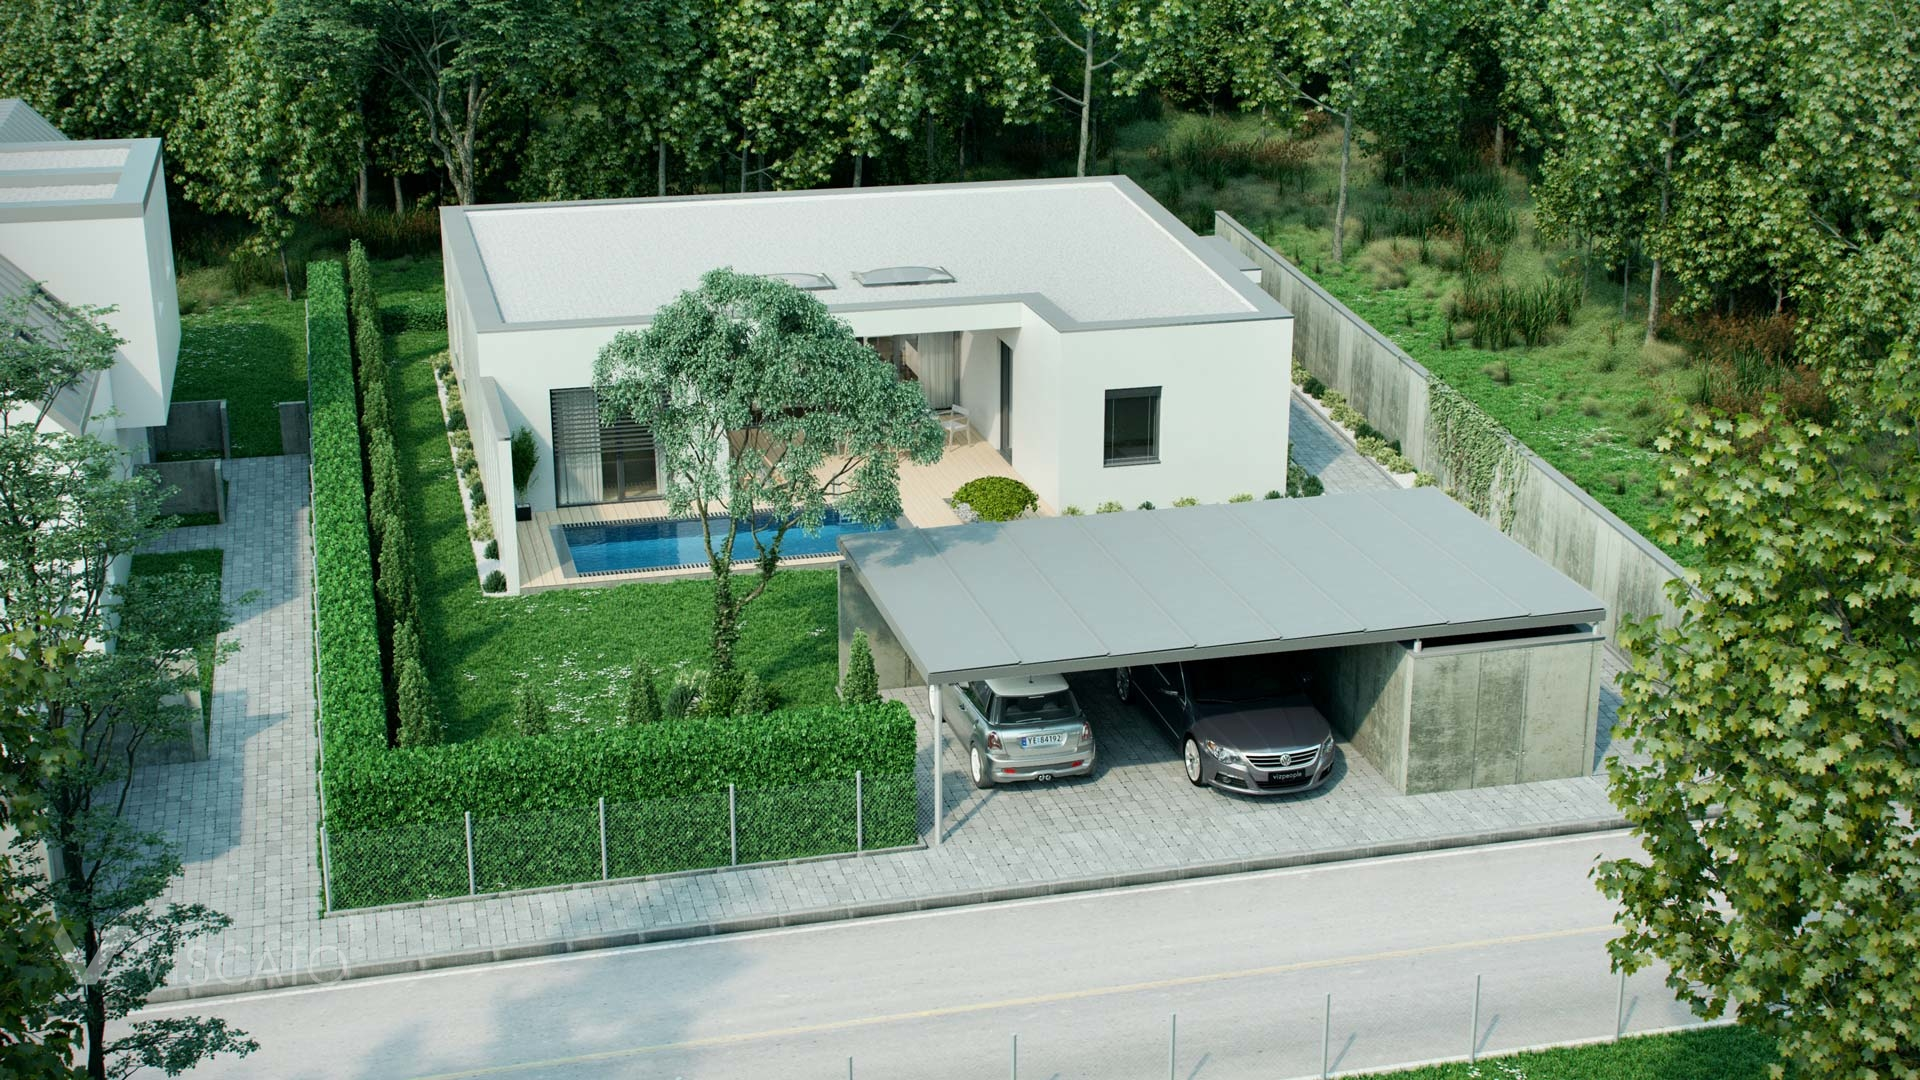 3D Visuals from bird-eye perspective of a roofed garage and house Viscato